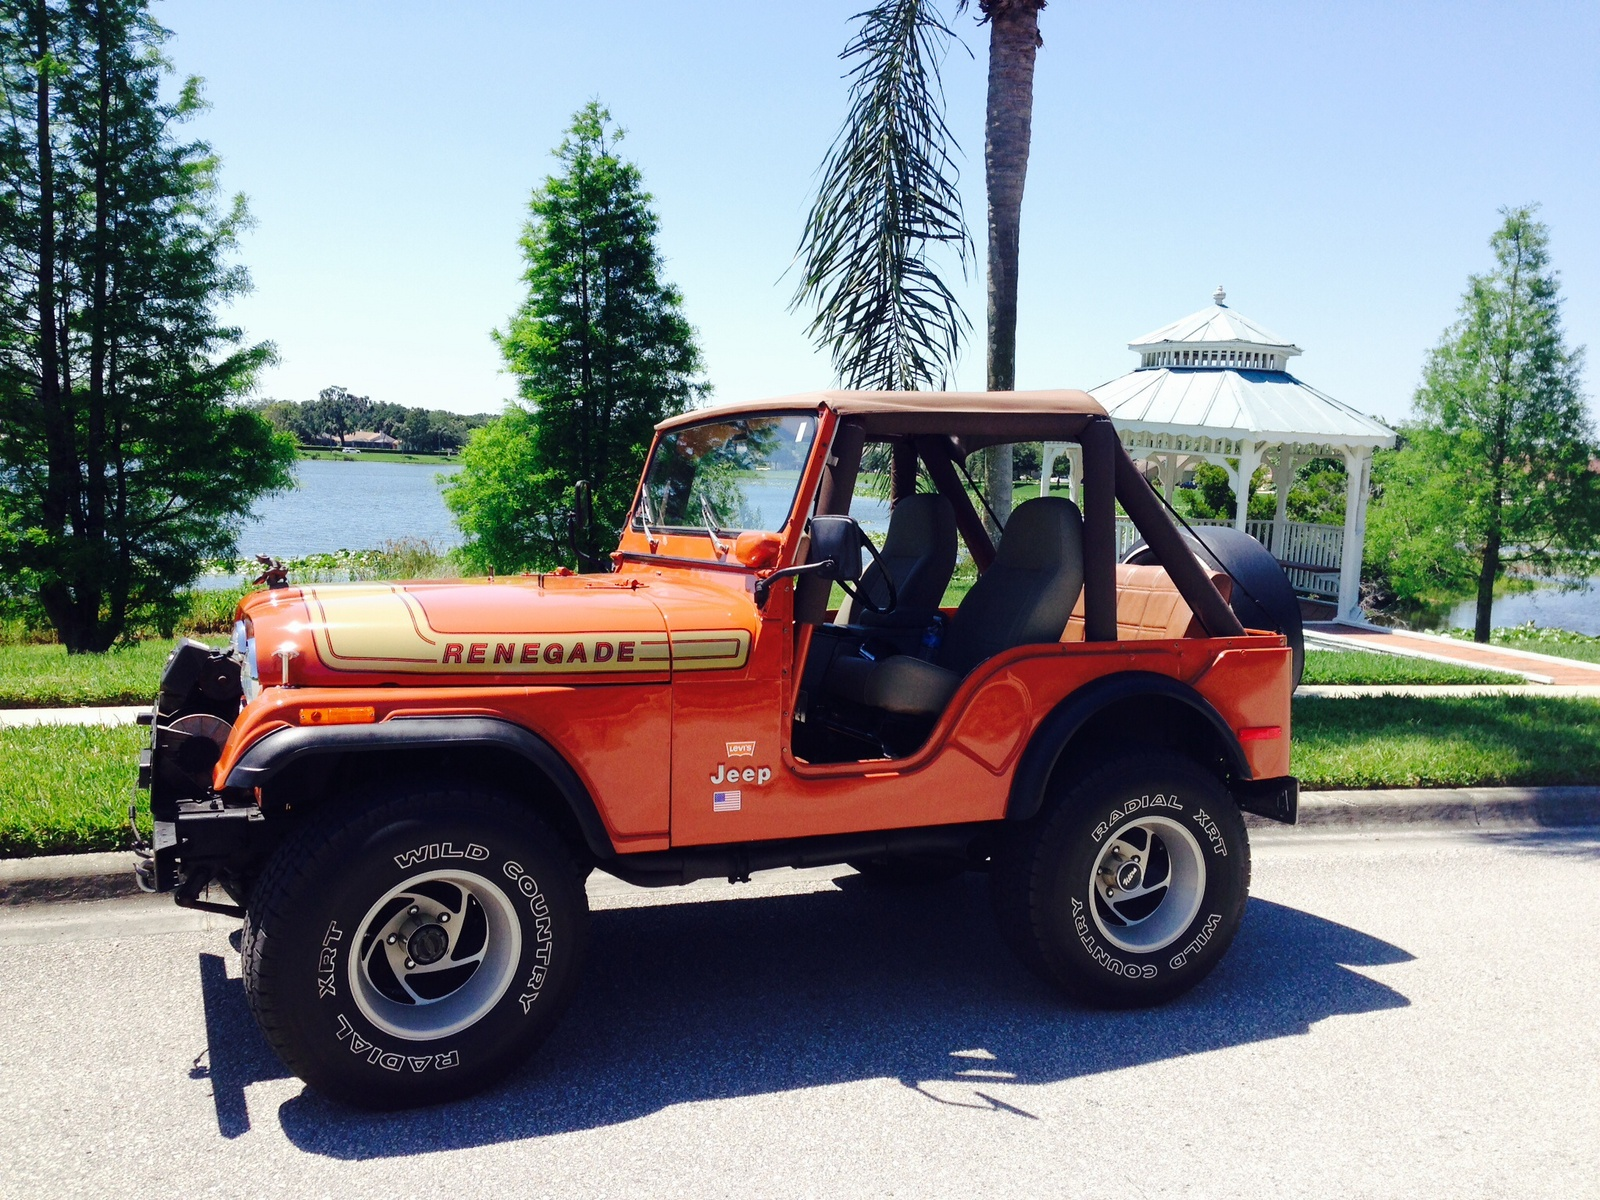 1981 jeep wagoneer pictures cargurus - 1975 Jeep Cj5 Pictures Cargurus